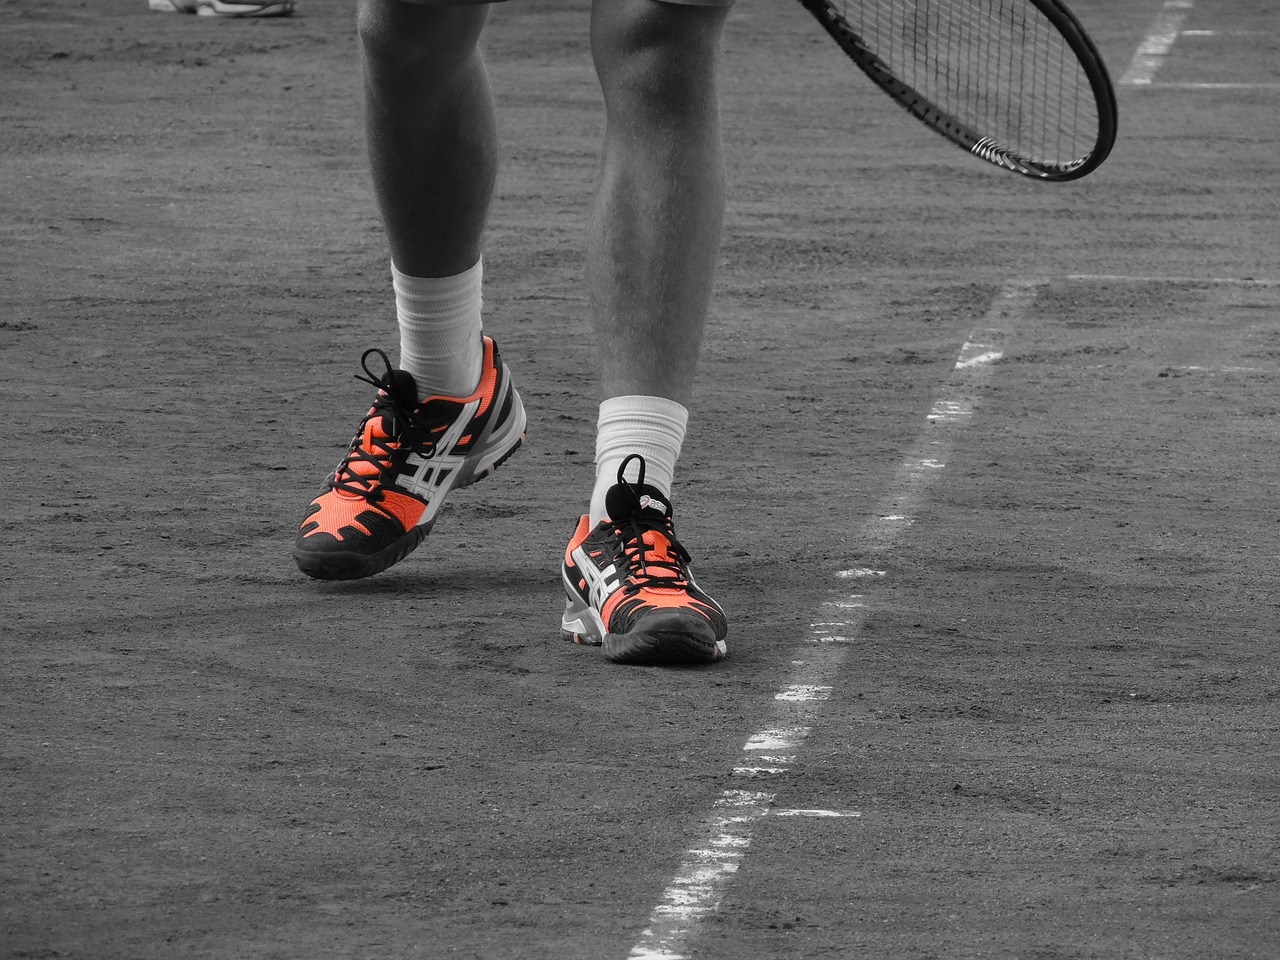 How to choose good sneakers for tennis